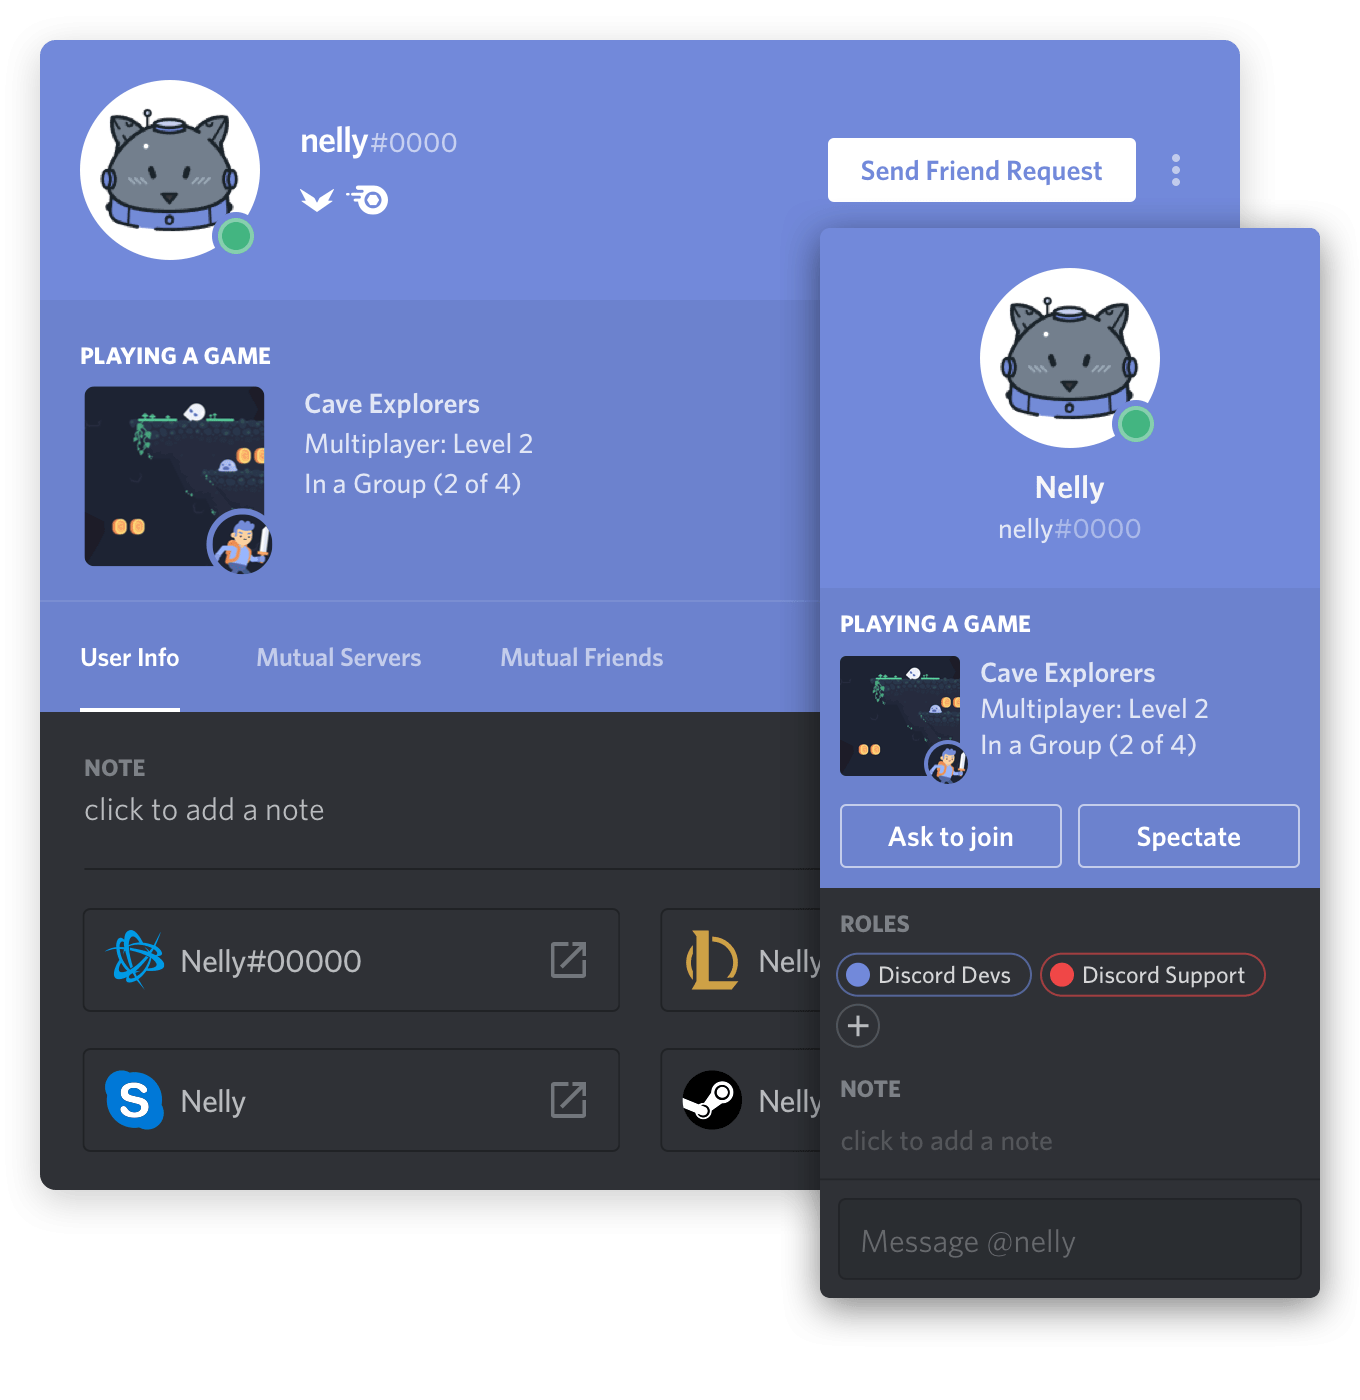 Discord Growth Story: 5 Takeaways to Replicate in Your Business